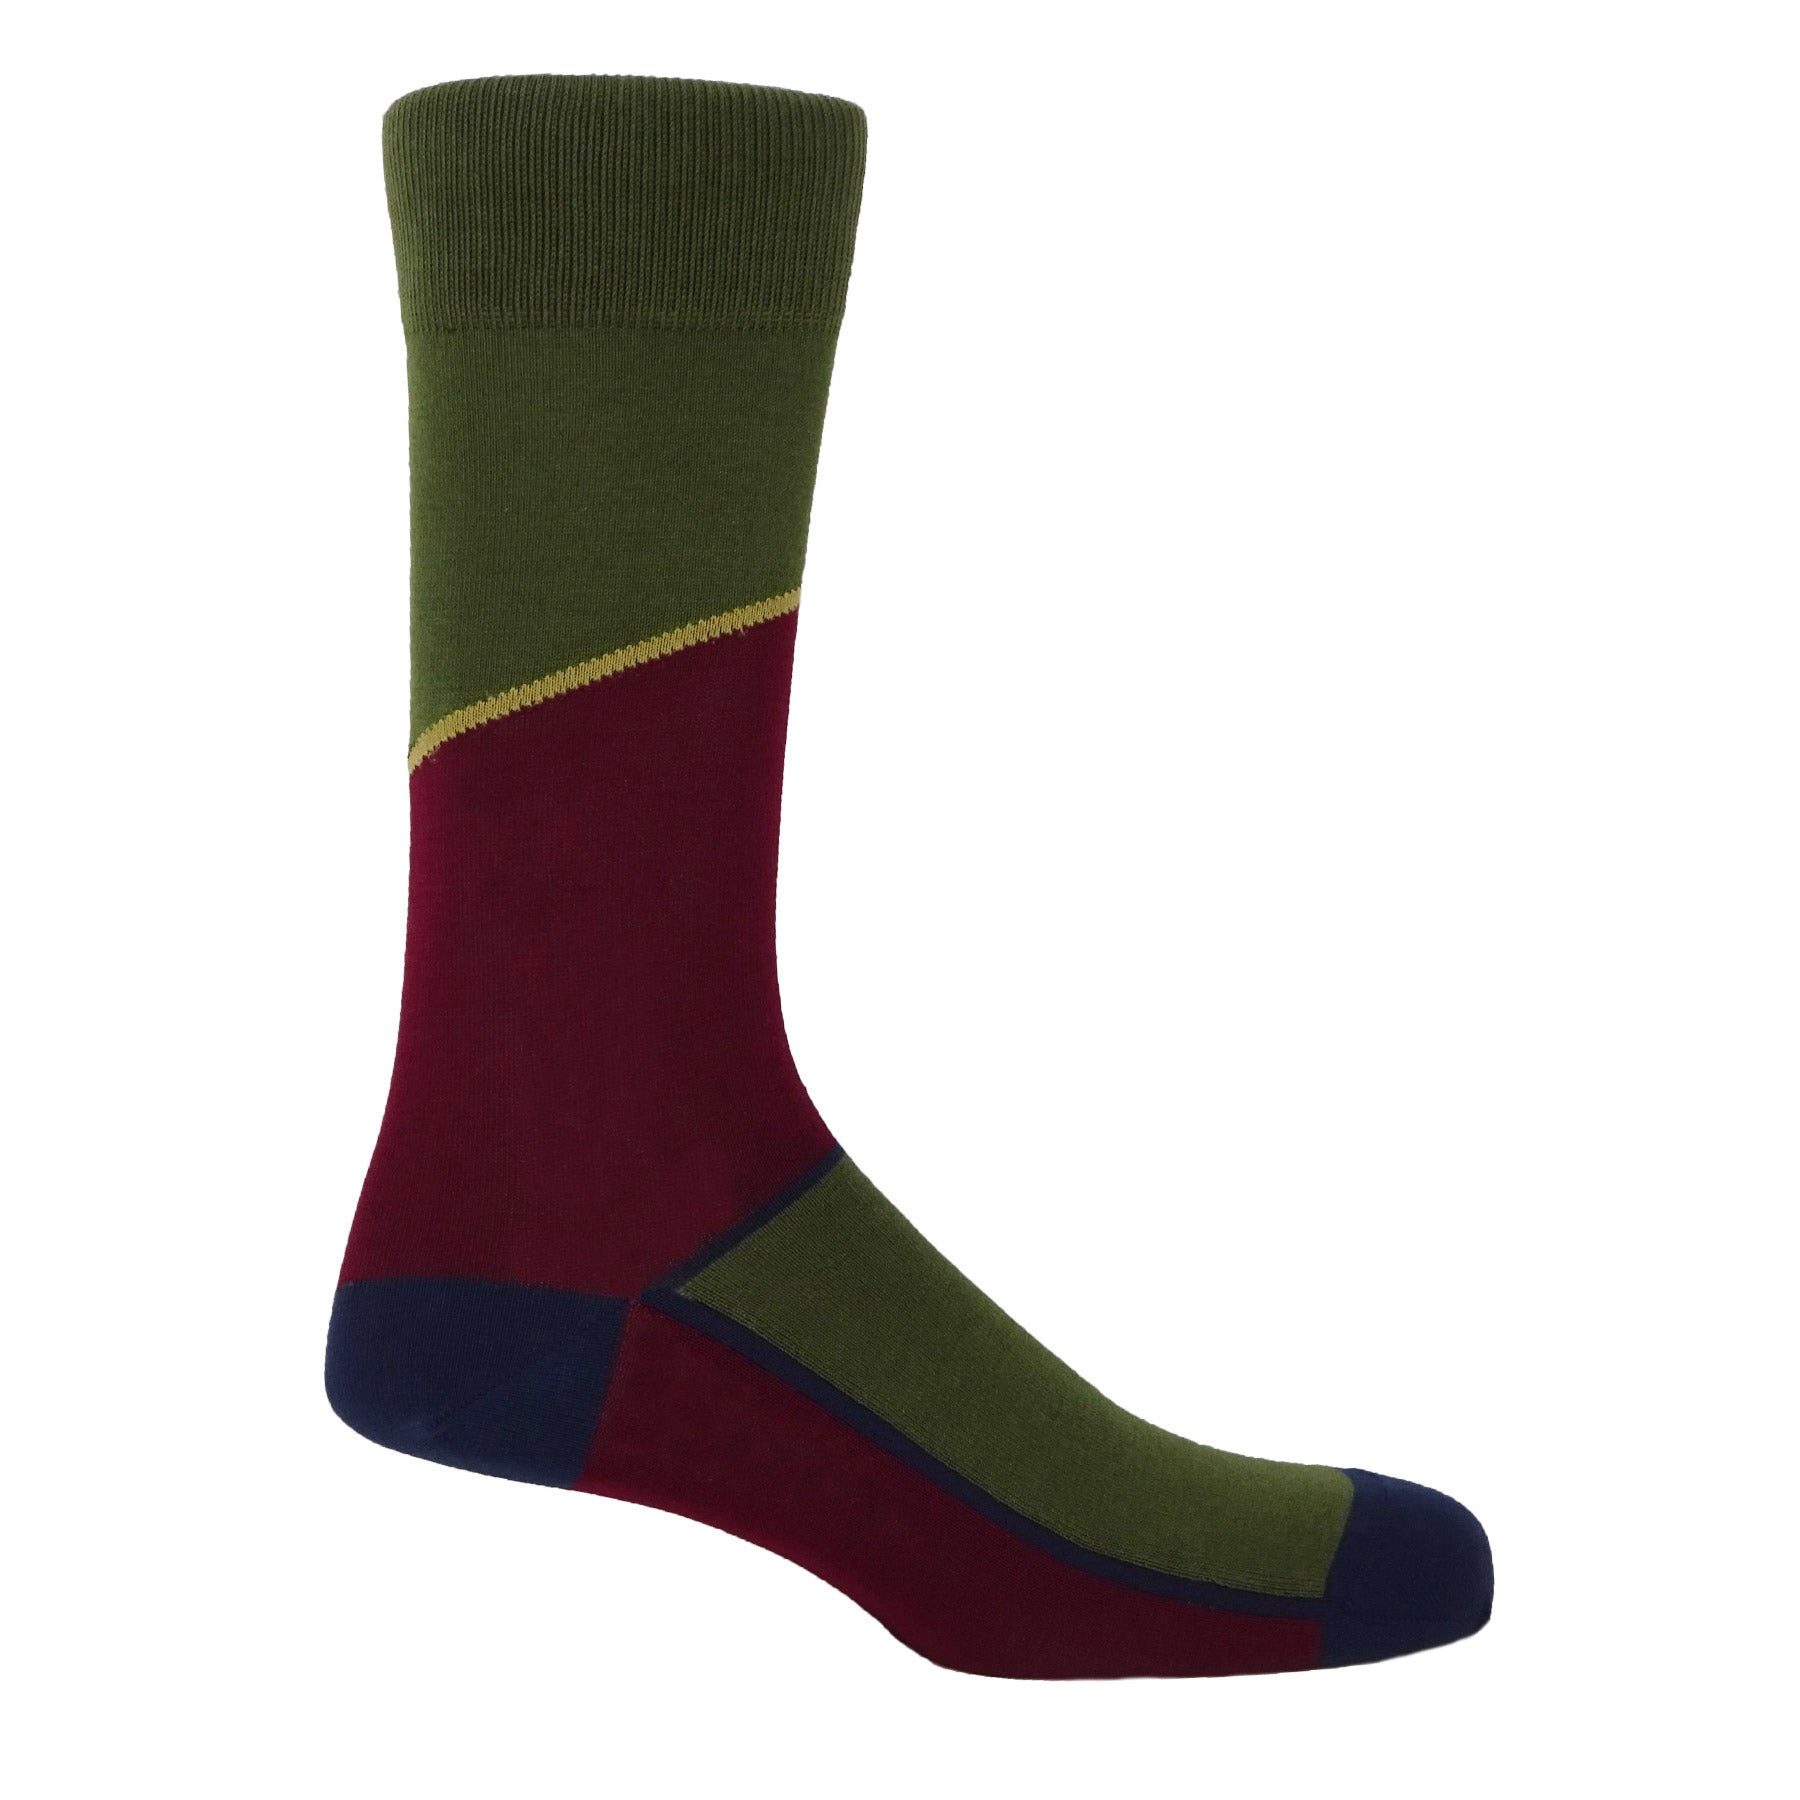 Hilltop Men's Socks - Juniper